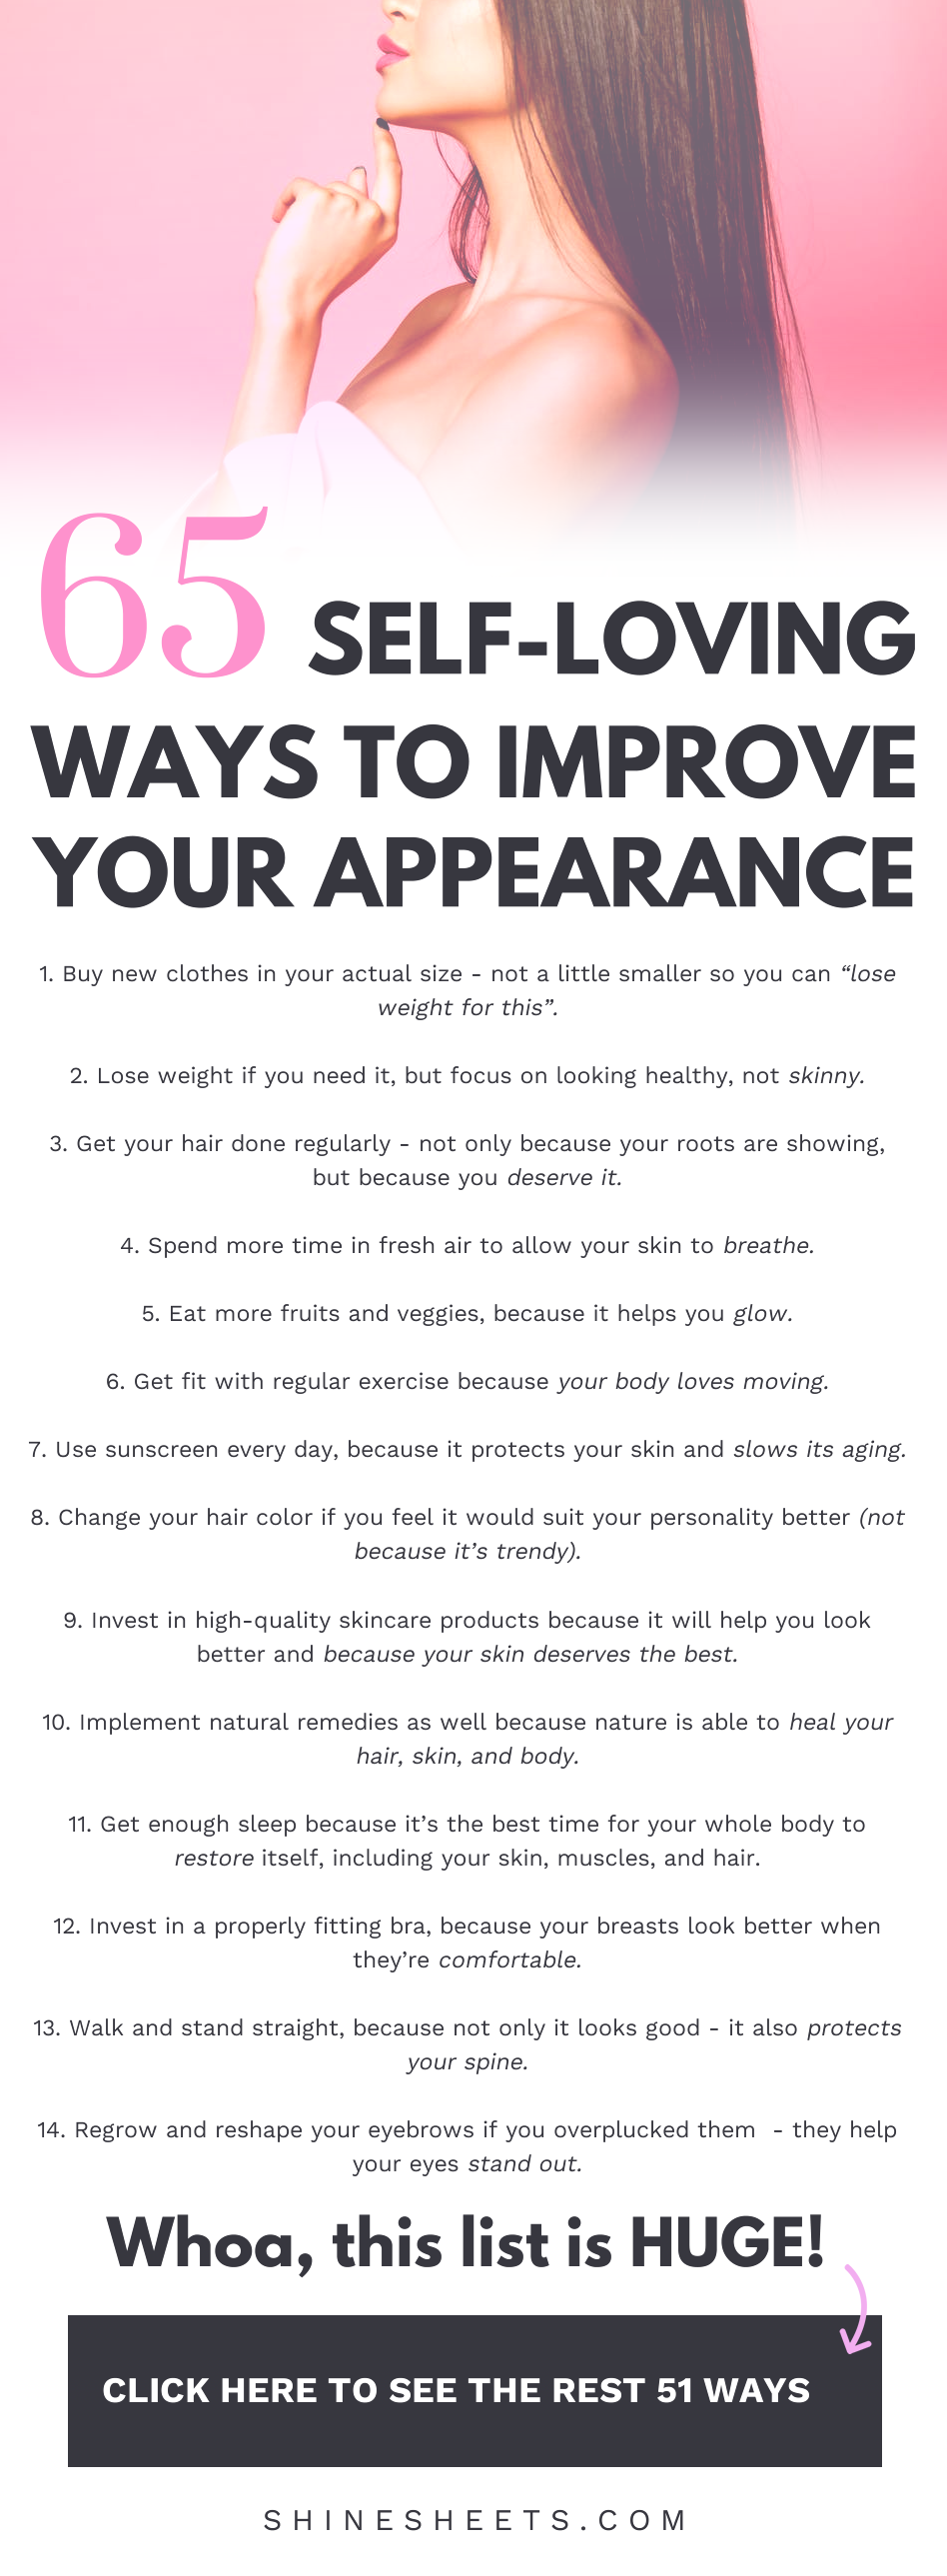 65 Self-Loving Ways To Improve Your Appearance